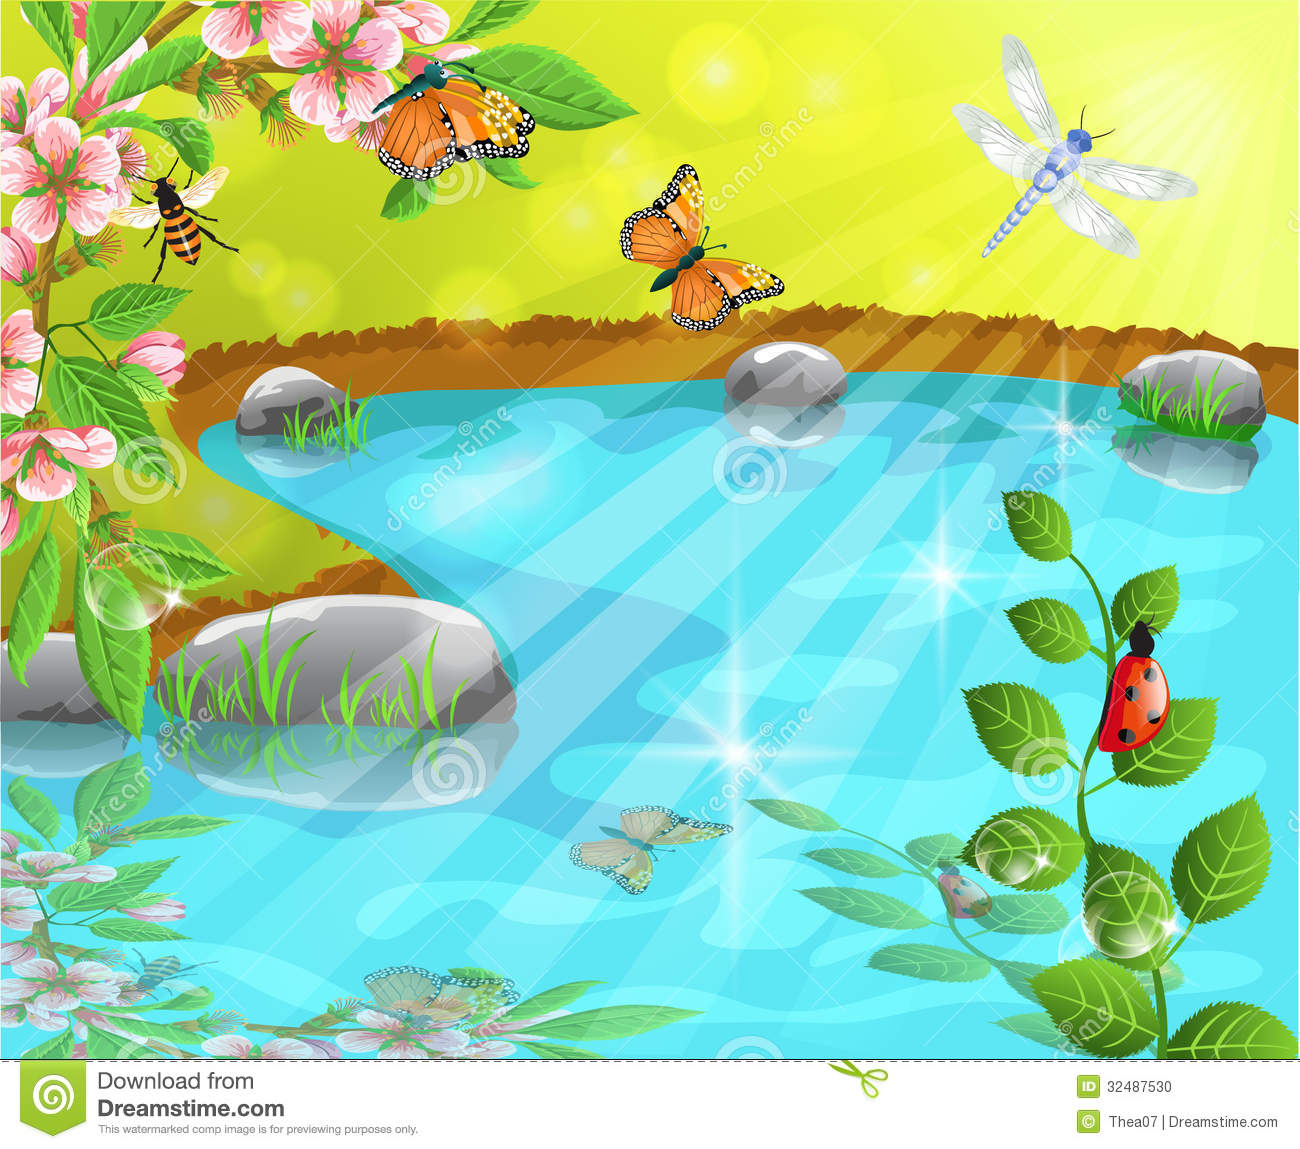 Spring water clipart 20 free Cliparts | Download images on ...